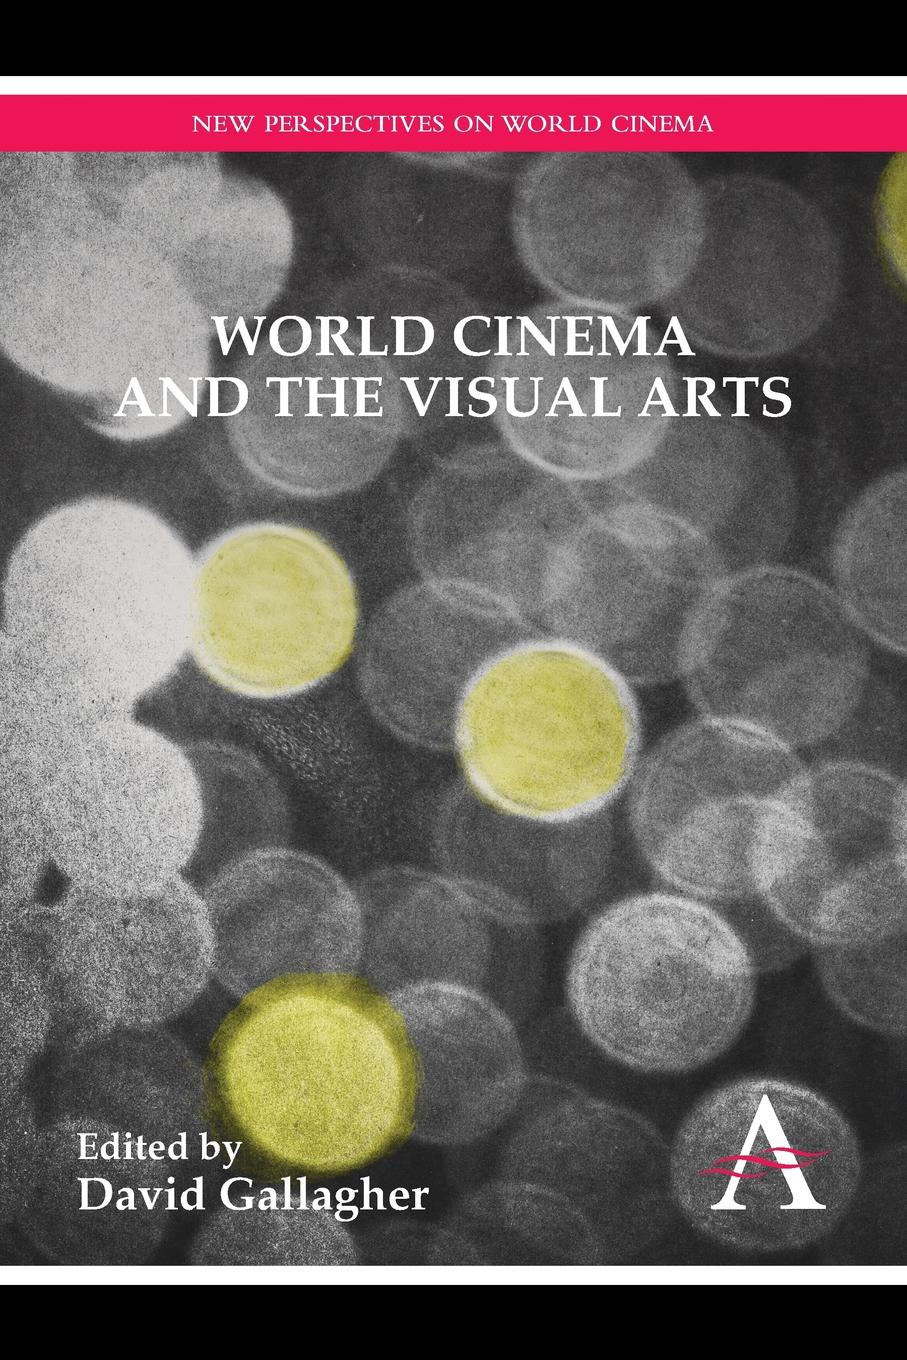 World Cinema and the Visual Arts the spiders from arts футболка